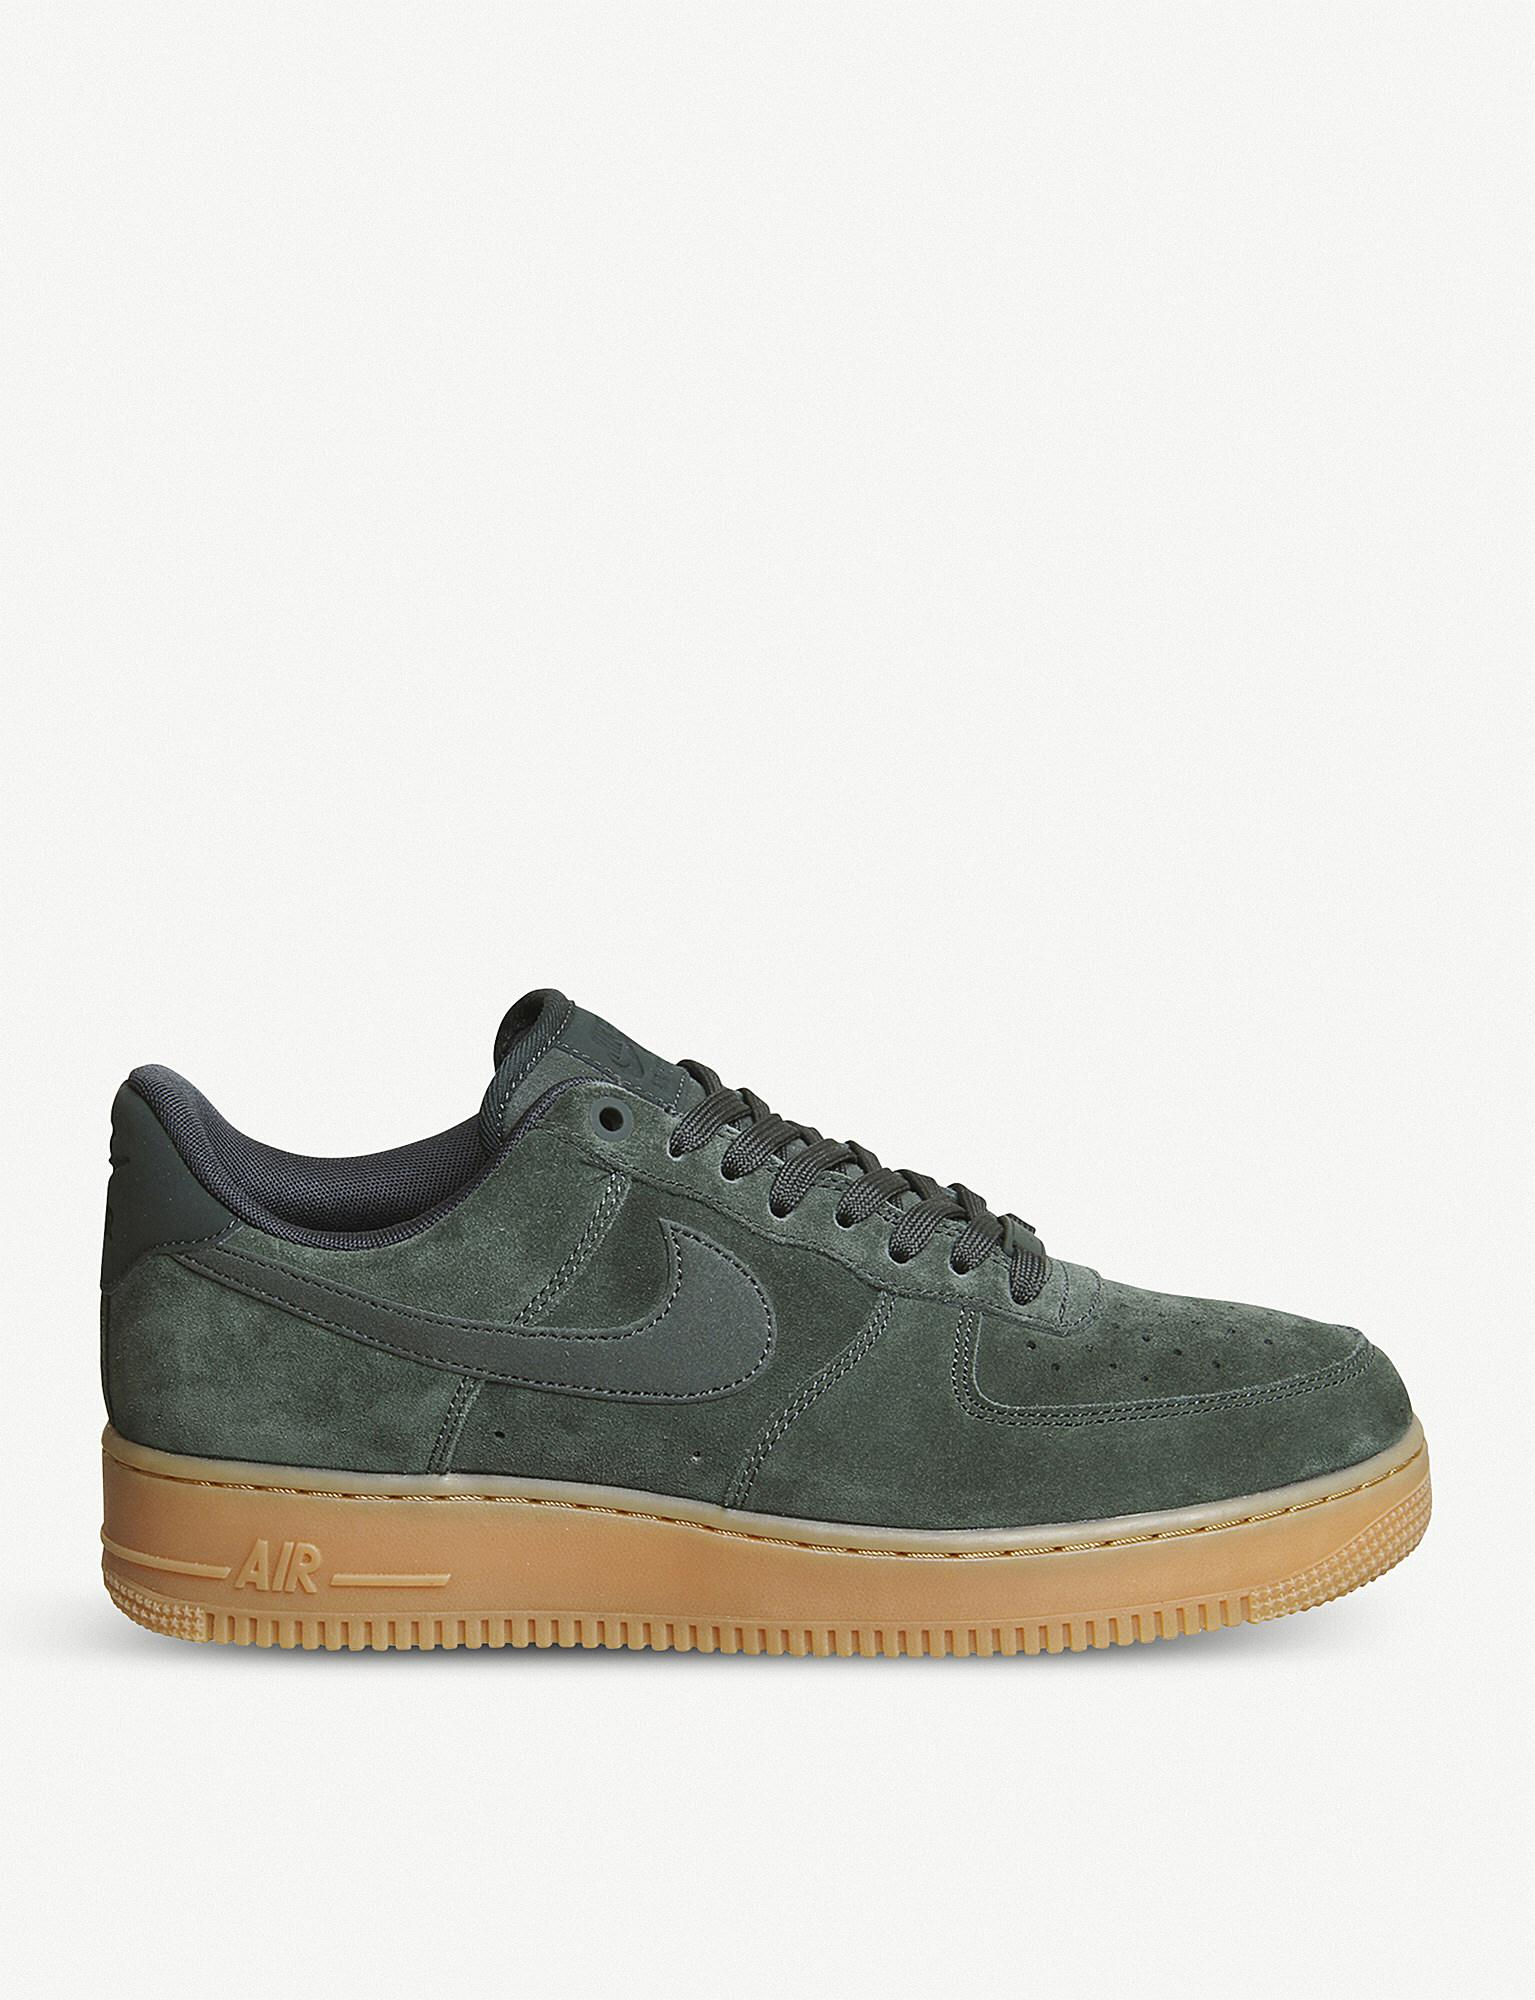 33d756f95a0 Gallery. Previously sold at  Selfridges · Men s Nike Air Force ...